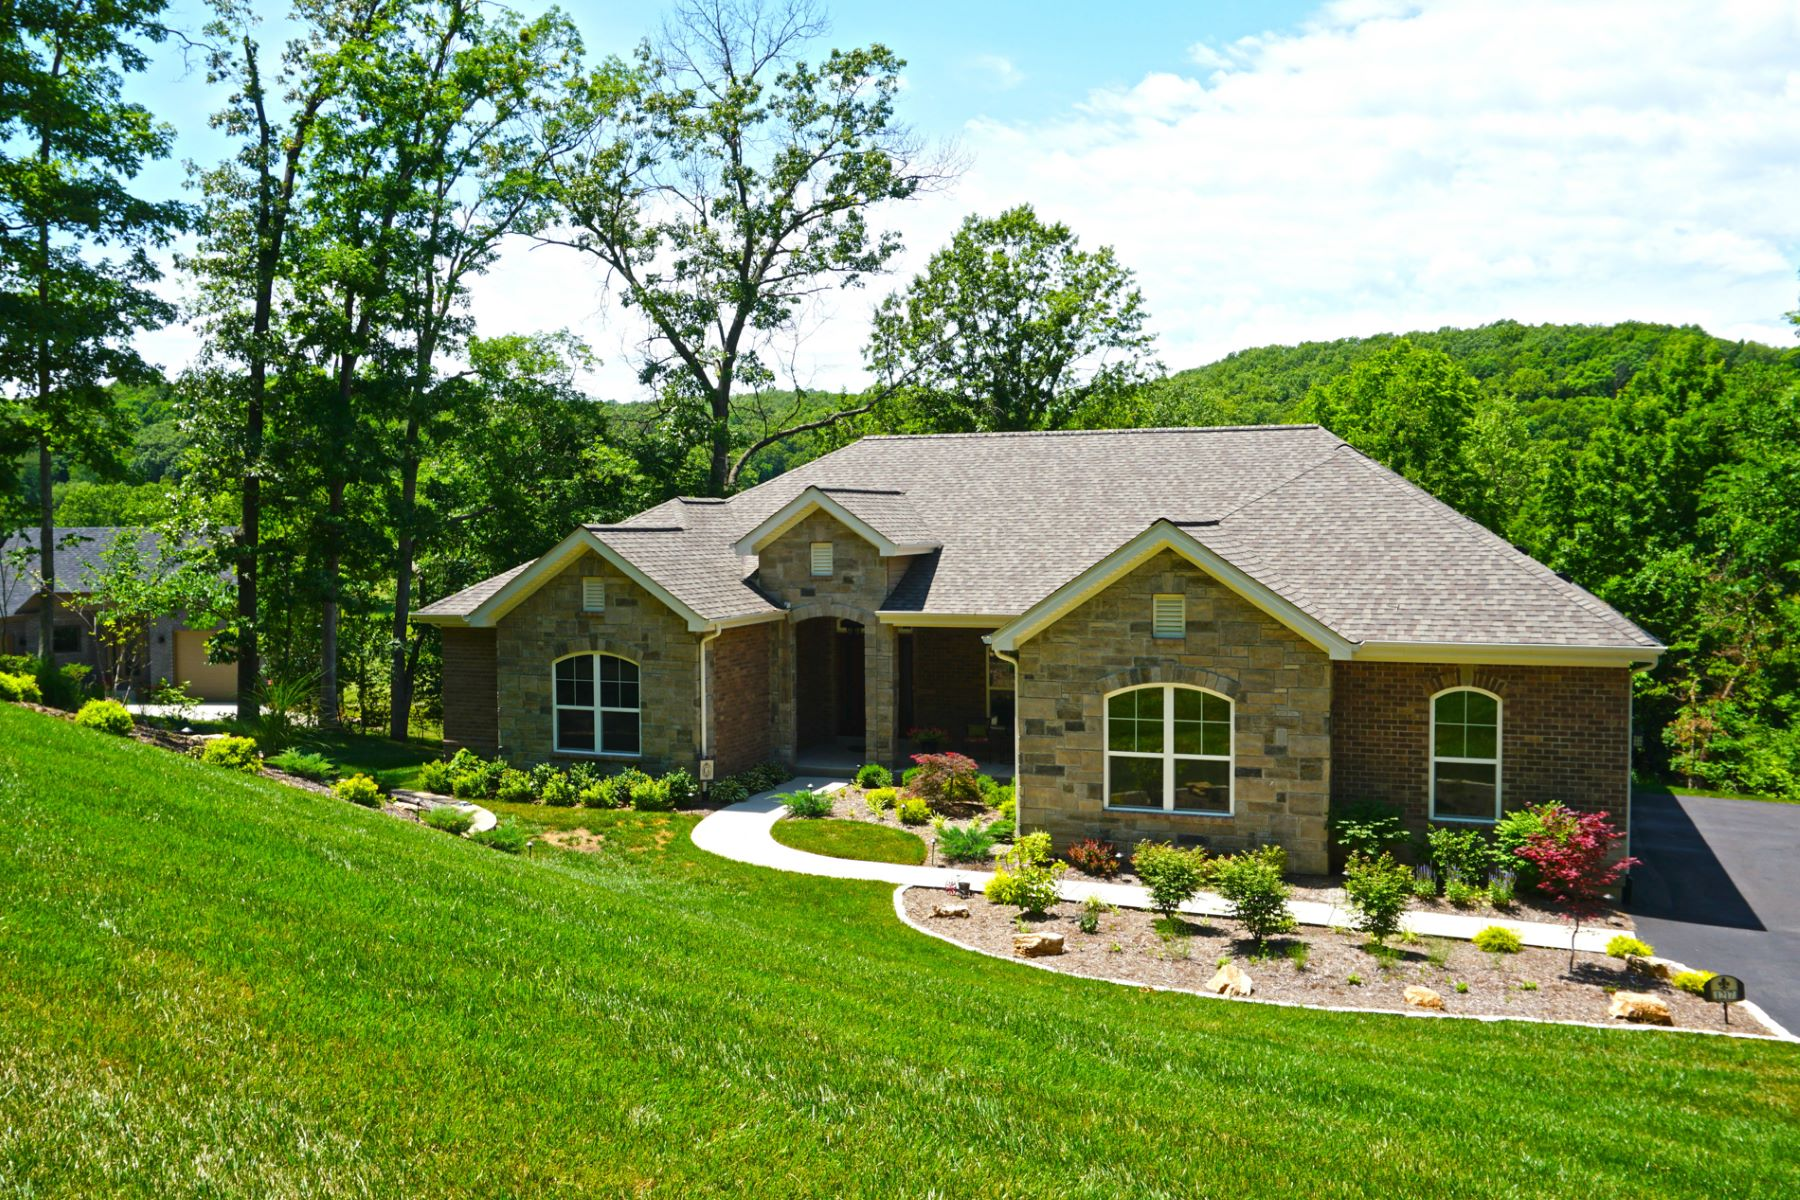 Single Family Home for Sale at Diamond Valley Dr 1217 Diamond Valley Dr High Ridge, Missouri 63049 United States